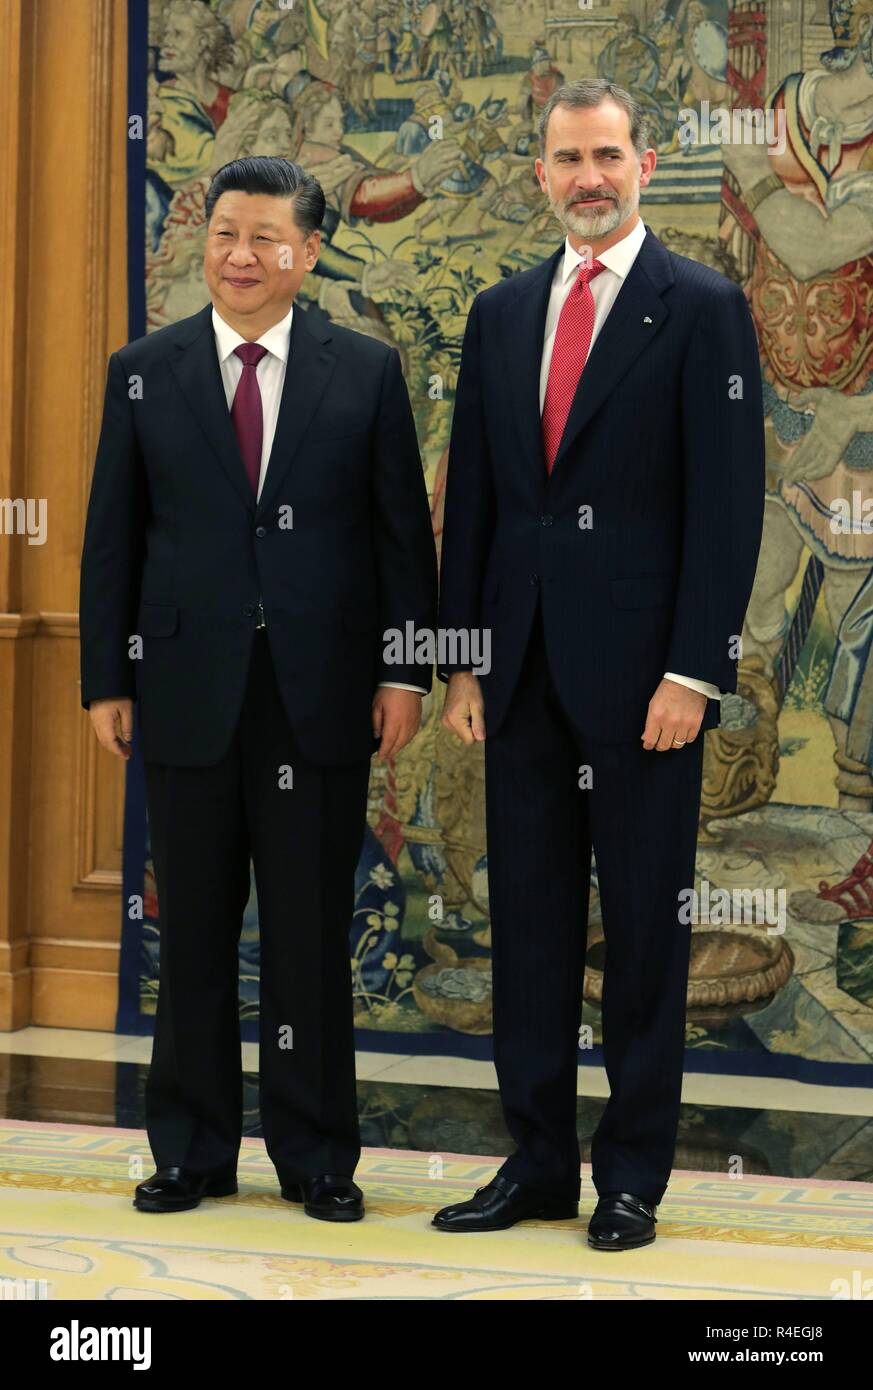 ¿Cuánto mide Xi Jinping? - Altura - Real height Madrid-spain-27th-november-2018-spanish-king-felipe-vi-meeting-with-china-president-xi-jinping-during-his-official-visit-to-spain-at-the-zarzuelapalace-in-madrid-on-tuesday-27-november-2018-credit-cordon-pressalamy-live-news-R4EGJ8